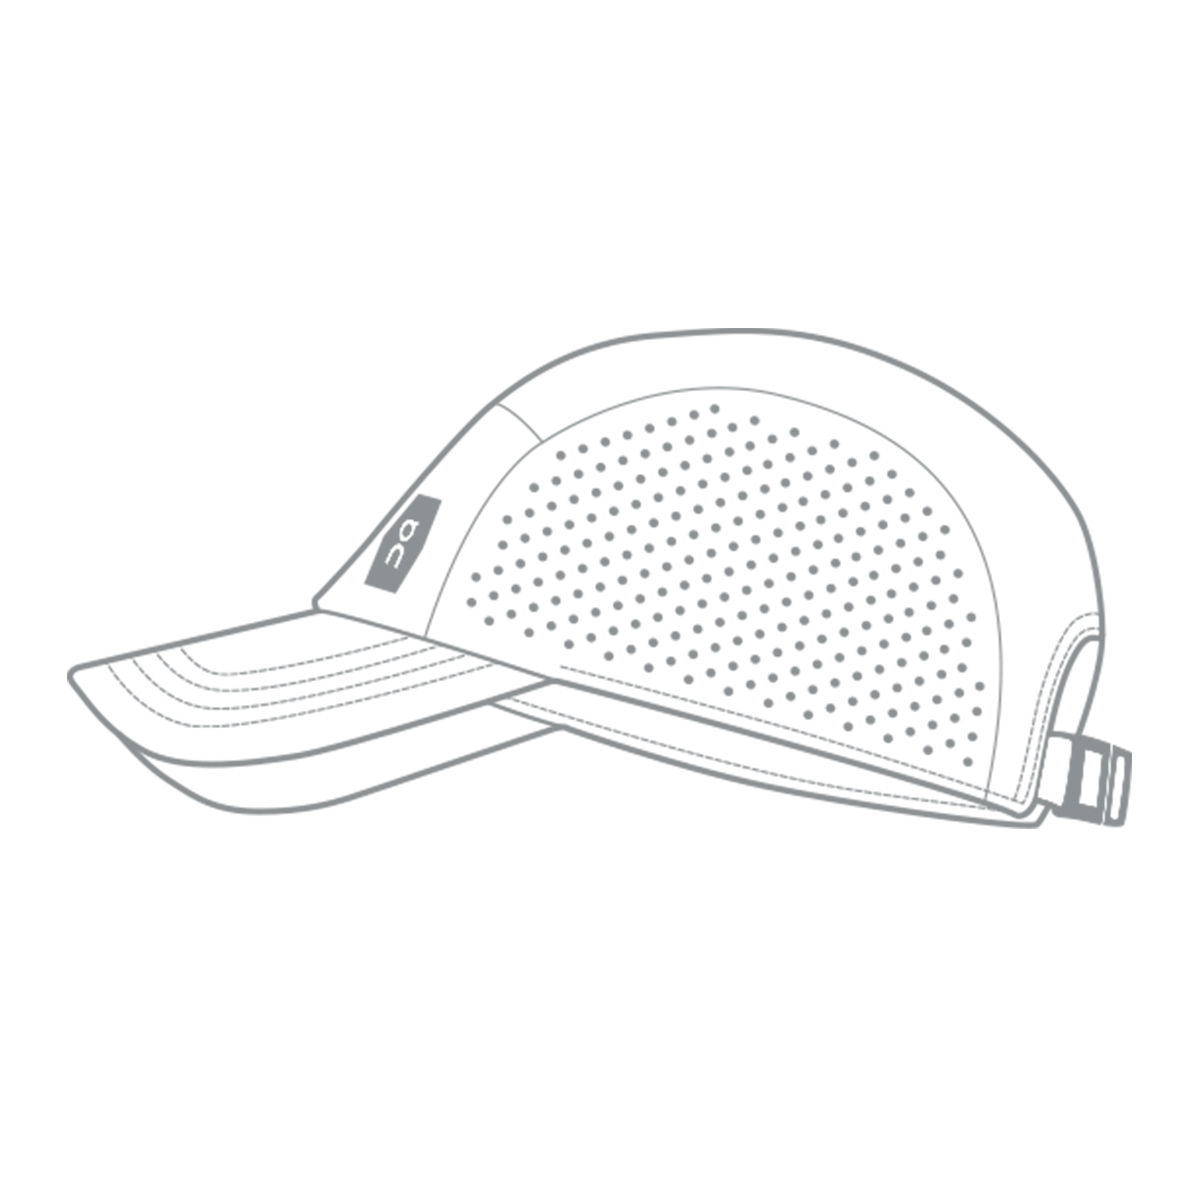 Baseball Cap Drawing